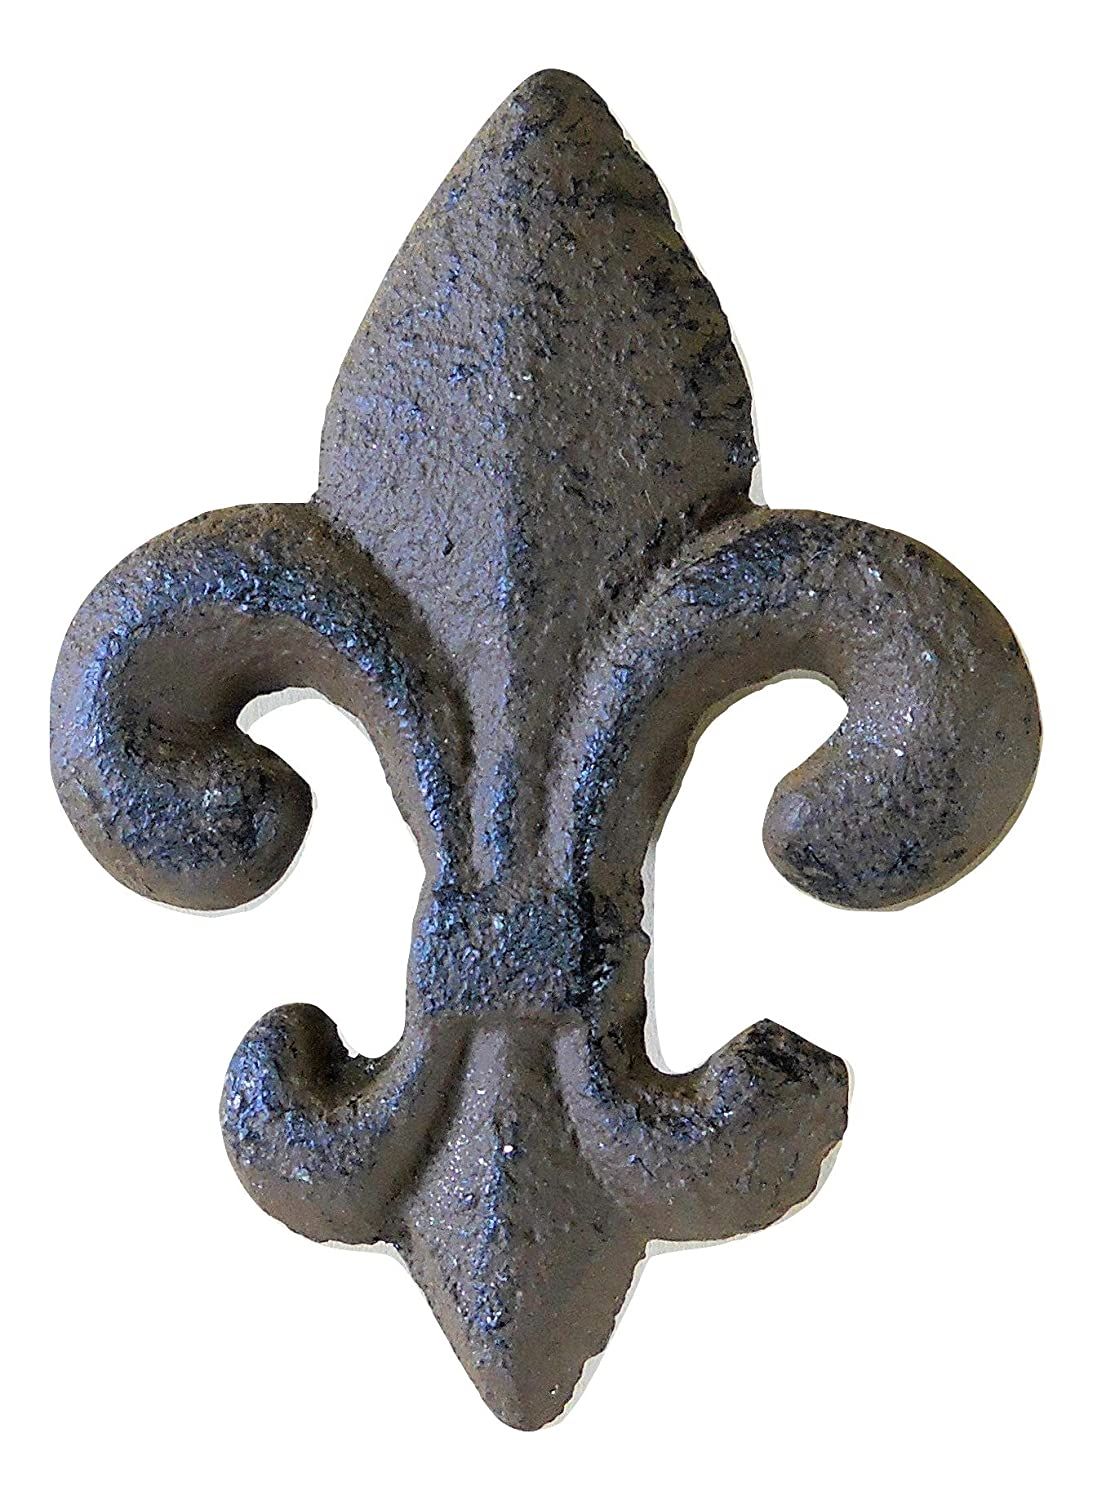 6 pc Cast Iron Fleur de Lys Knobs for Drawers and Cabinets